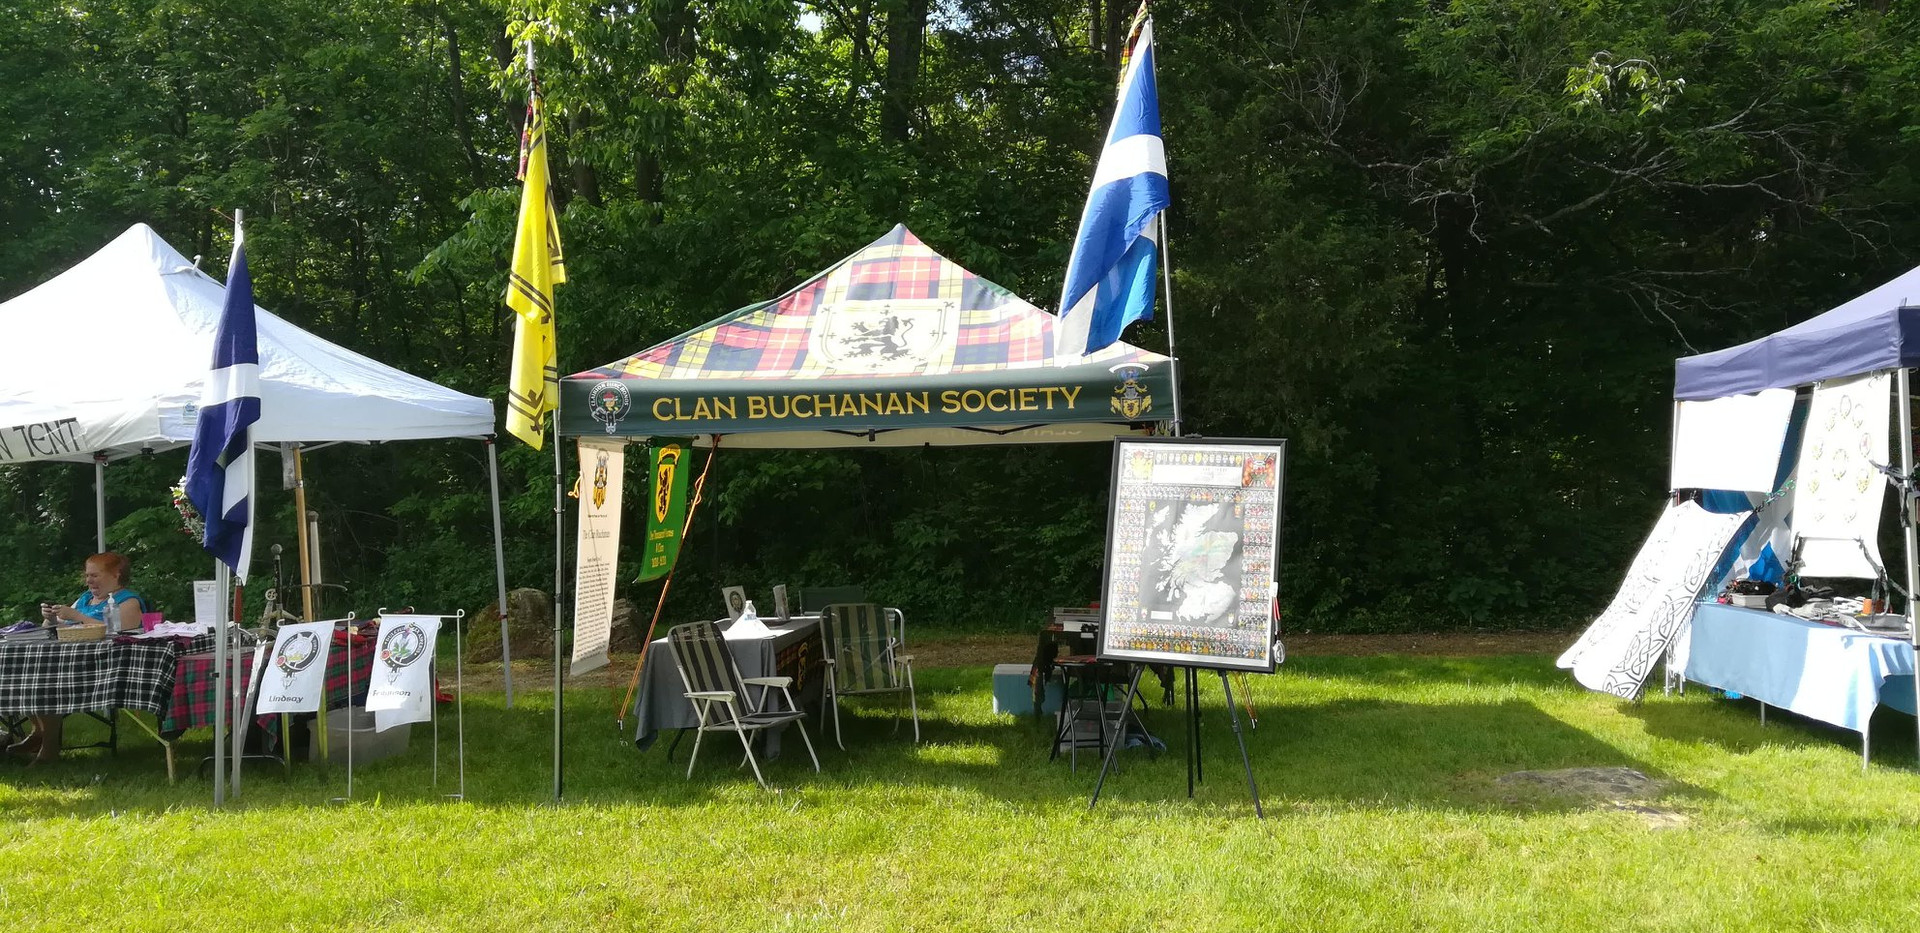 Clan Buchannan Tent